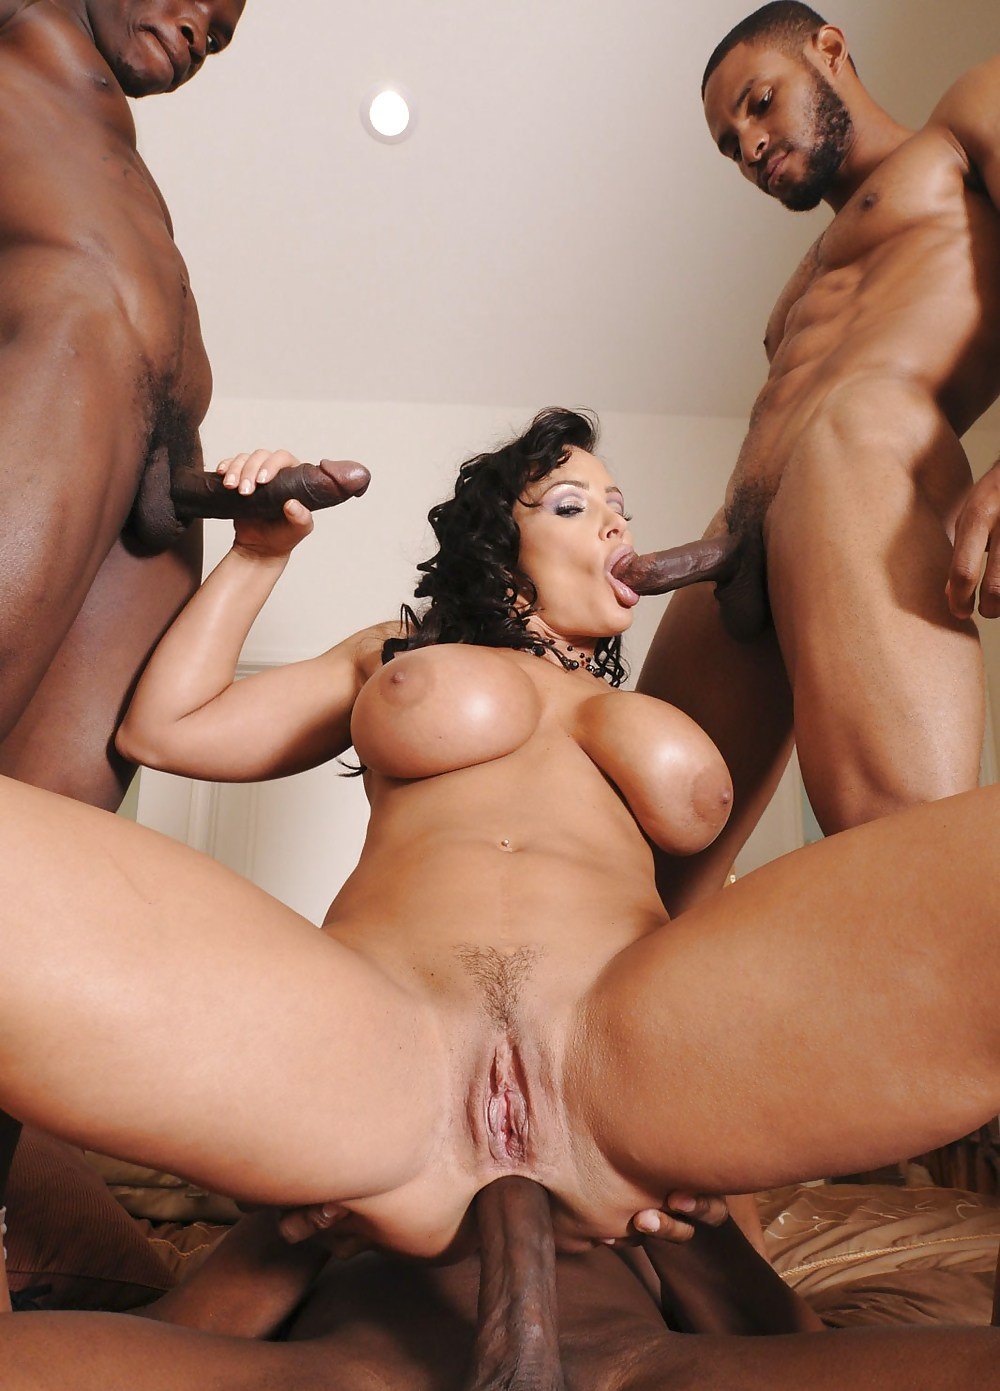 Lisa ann interracial sex, nude with cock aishwarya